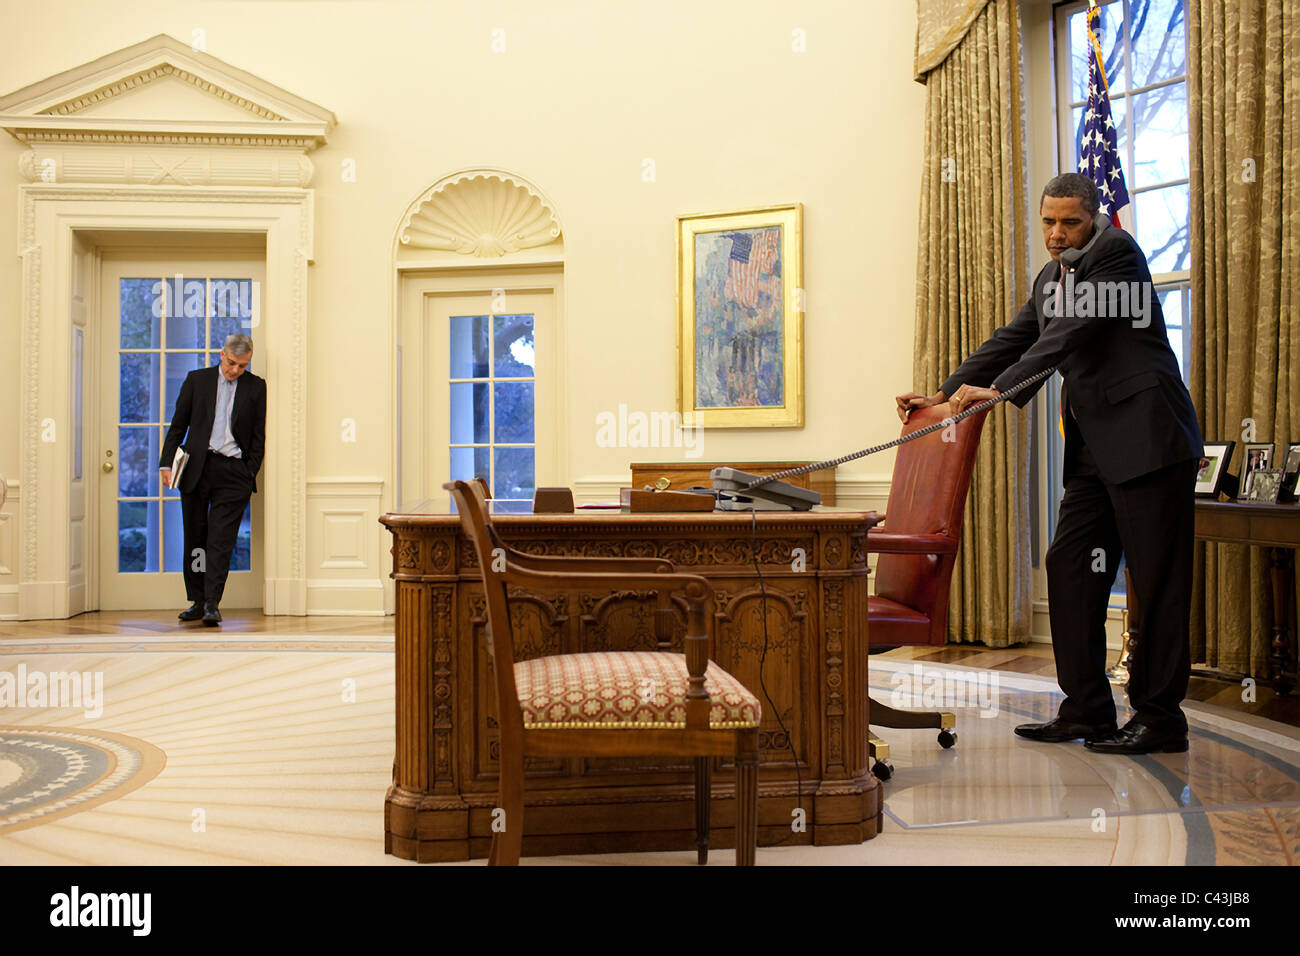 White House Oval Office Obama Images